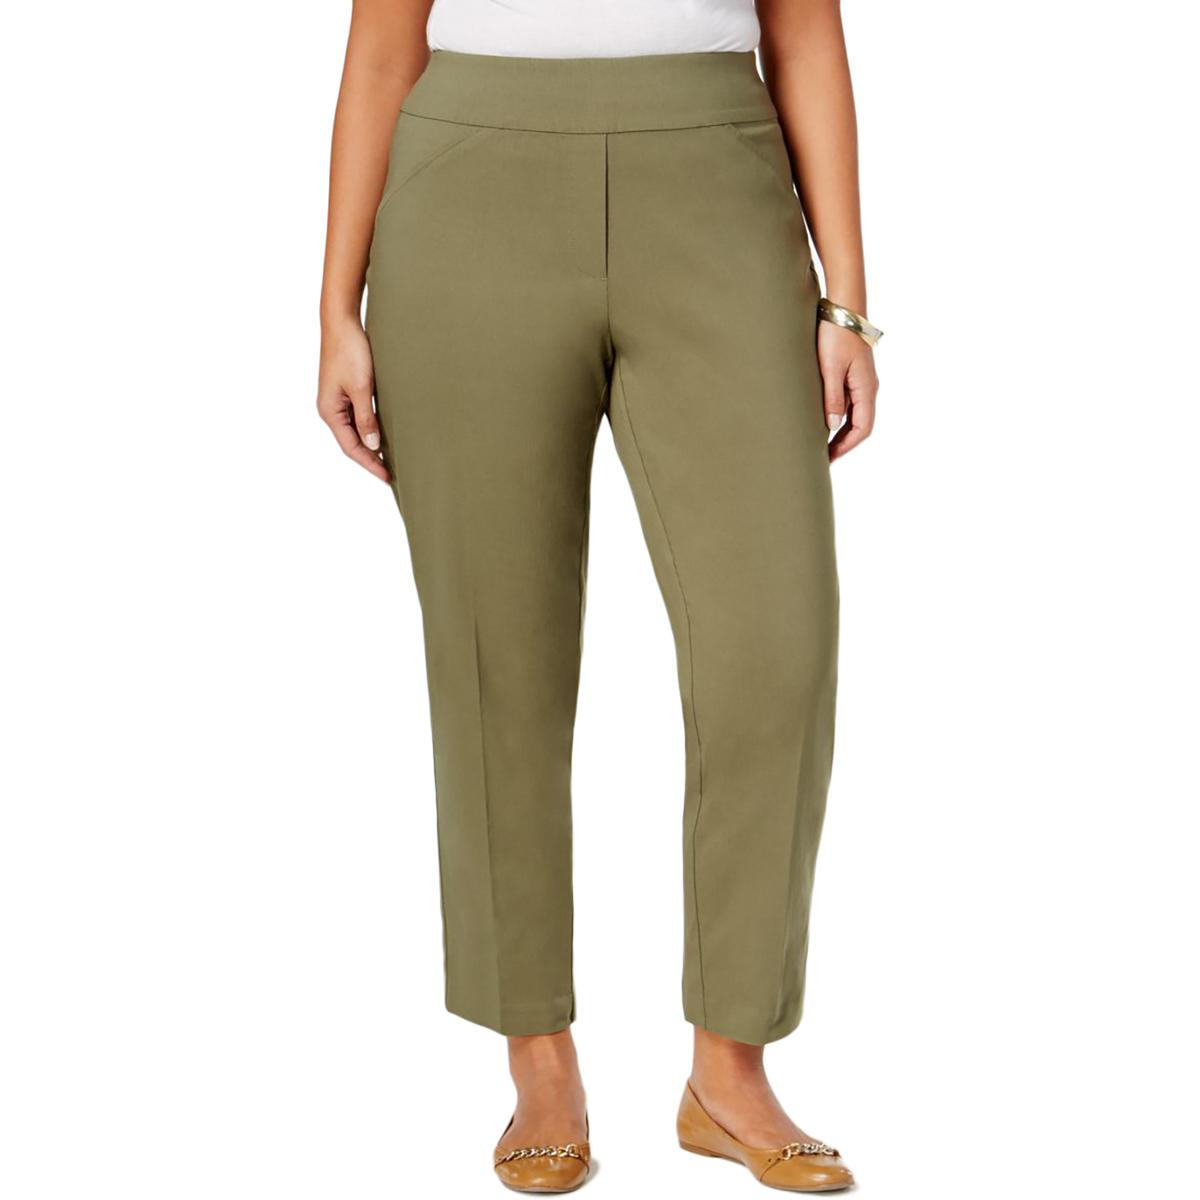 Alfred Dunner Womens Plus Allure Modern Fit Contoured Casual Pants